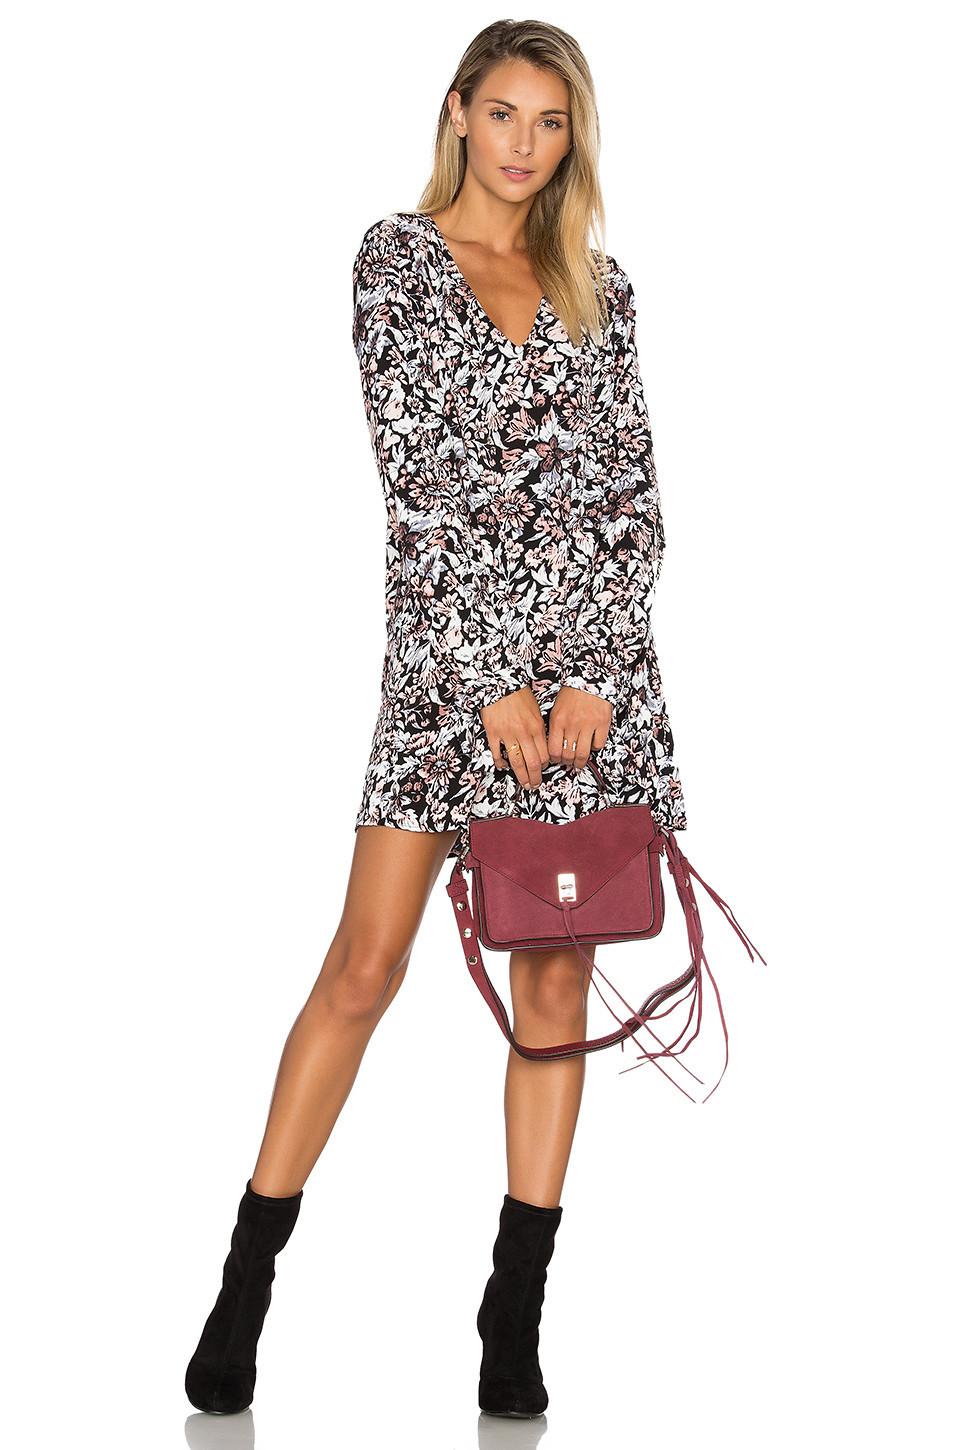 The Fifth Label Anytime Anywhere Long Sleeve Dress in black